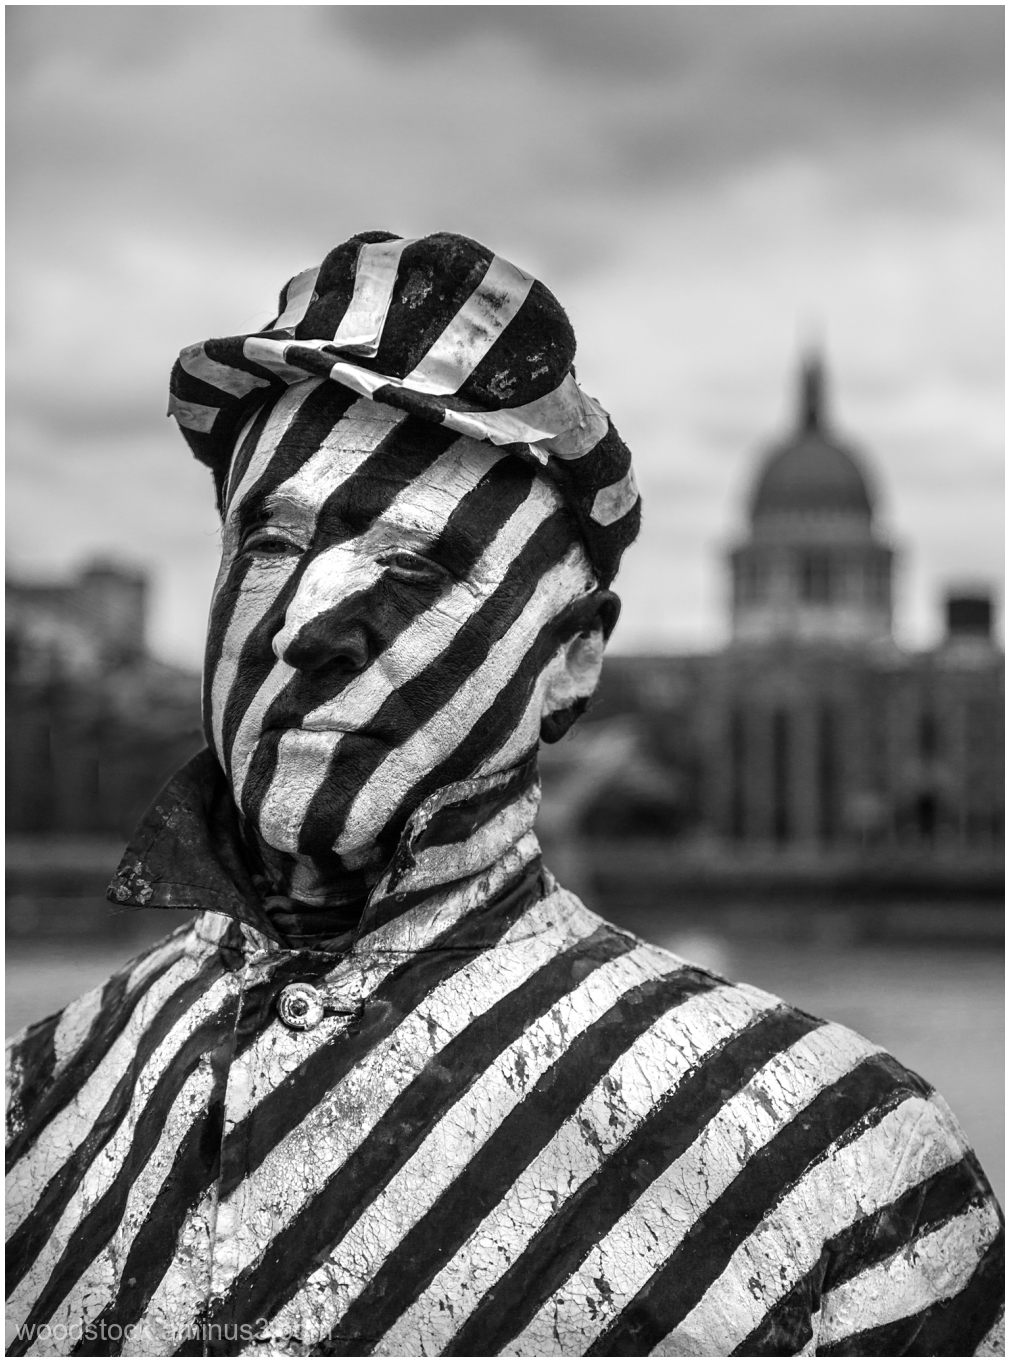 Zebra Man @ St. Paul's